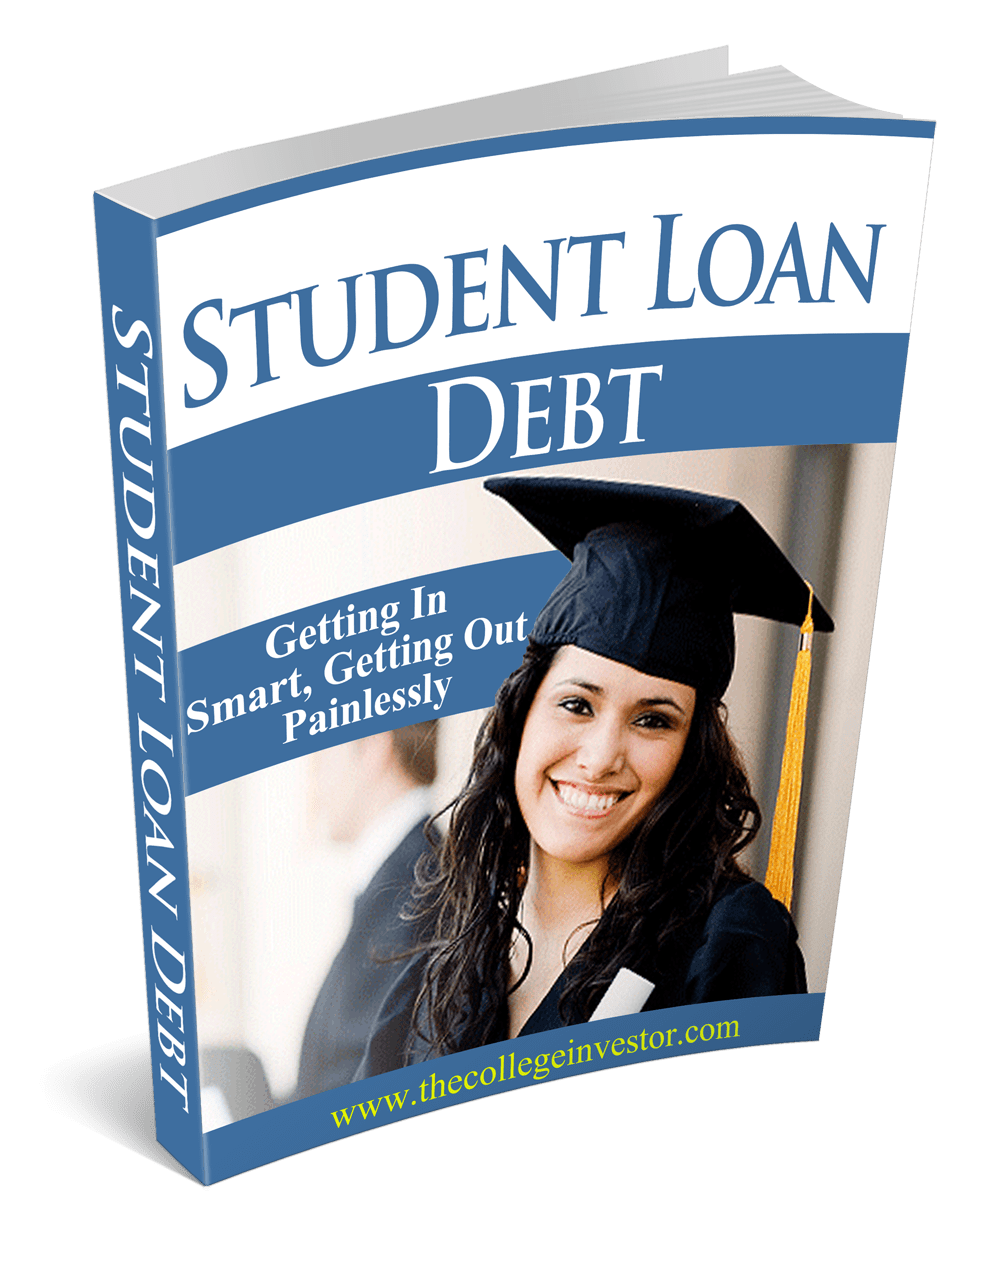 Student Loan Debt Ebook